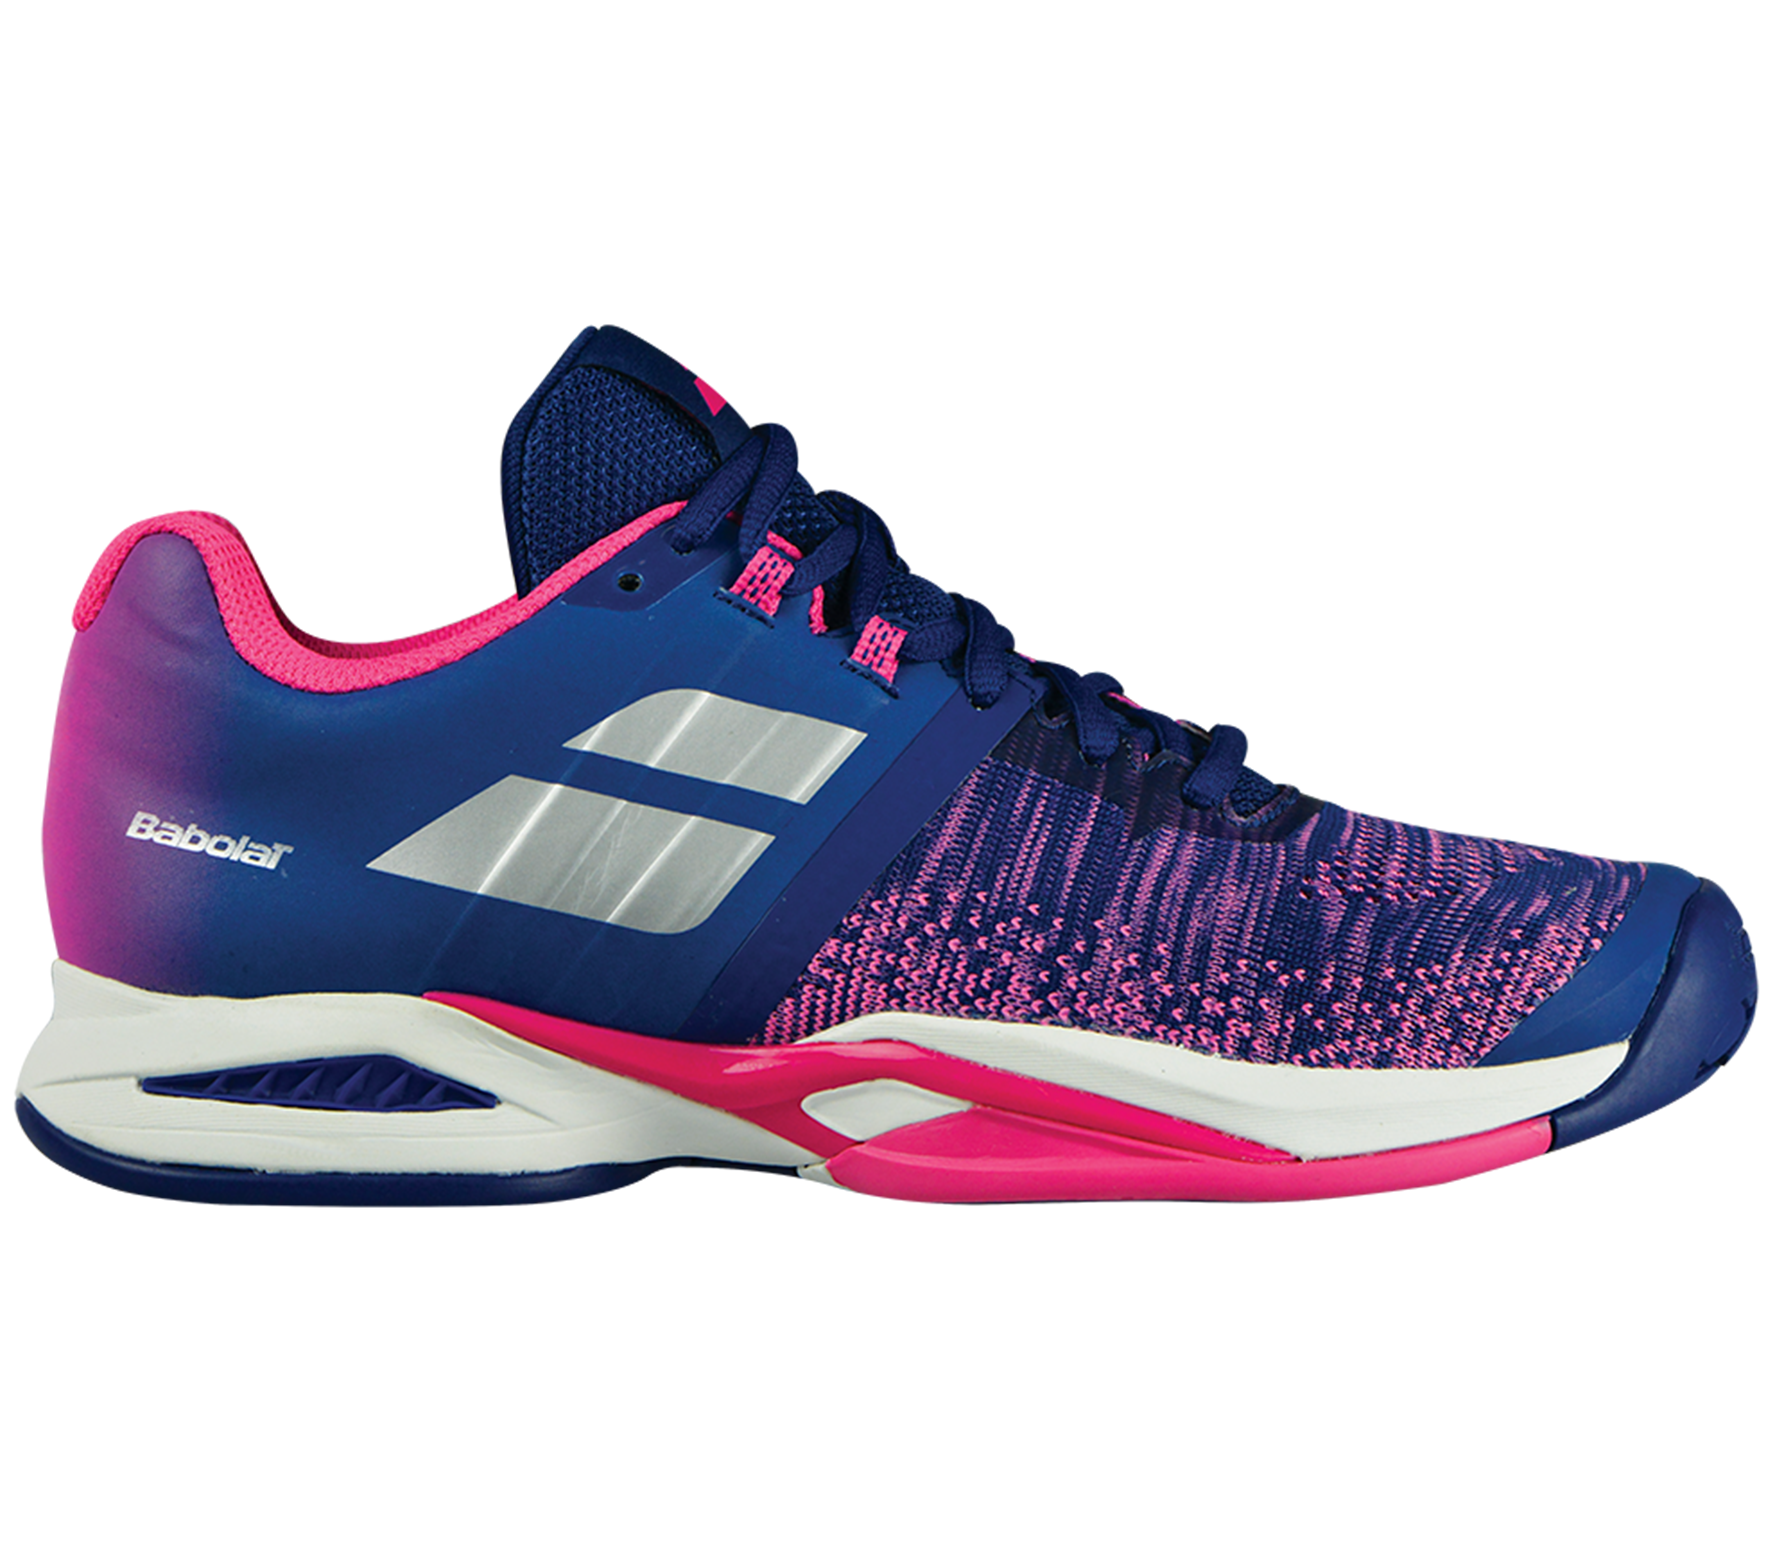 f2b5b5938093 Babolat - Propulse Blast All Court women s tennis shoes (blue pink ...